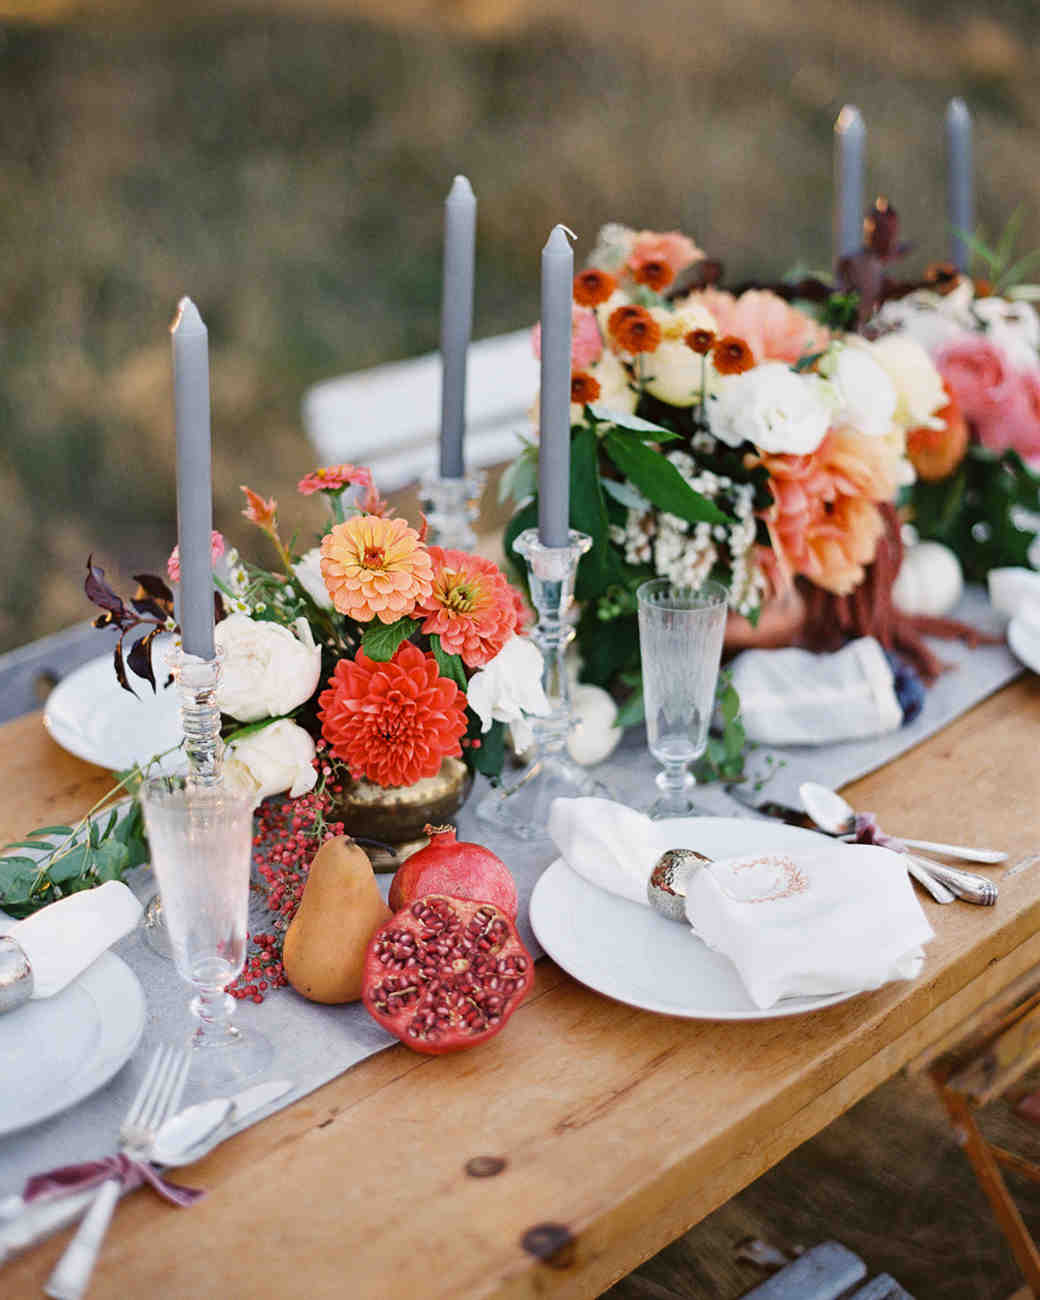 wedding ideas for fall centerpieces 66 rustic fall wedding centerpieces martha stewart weddings 28127